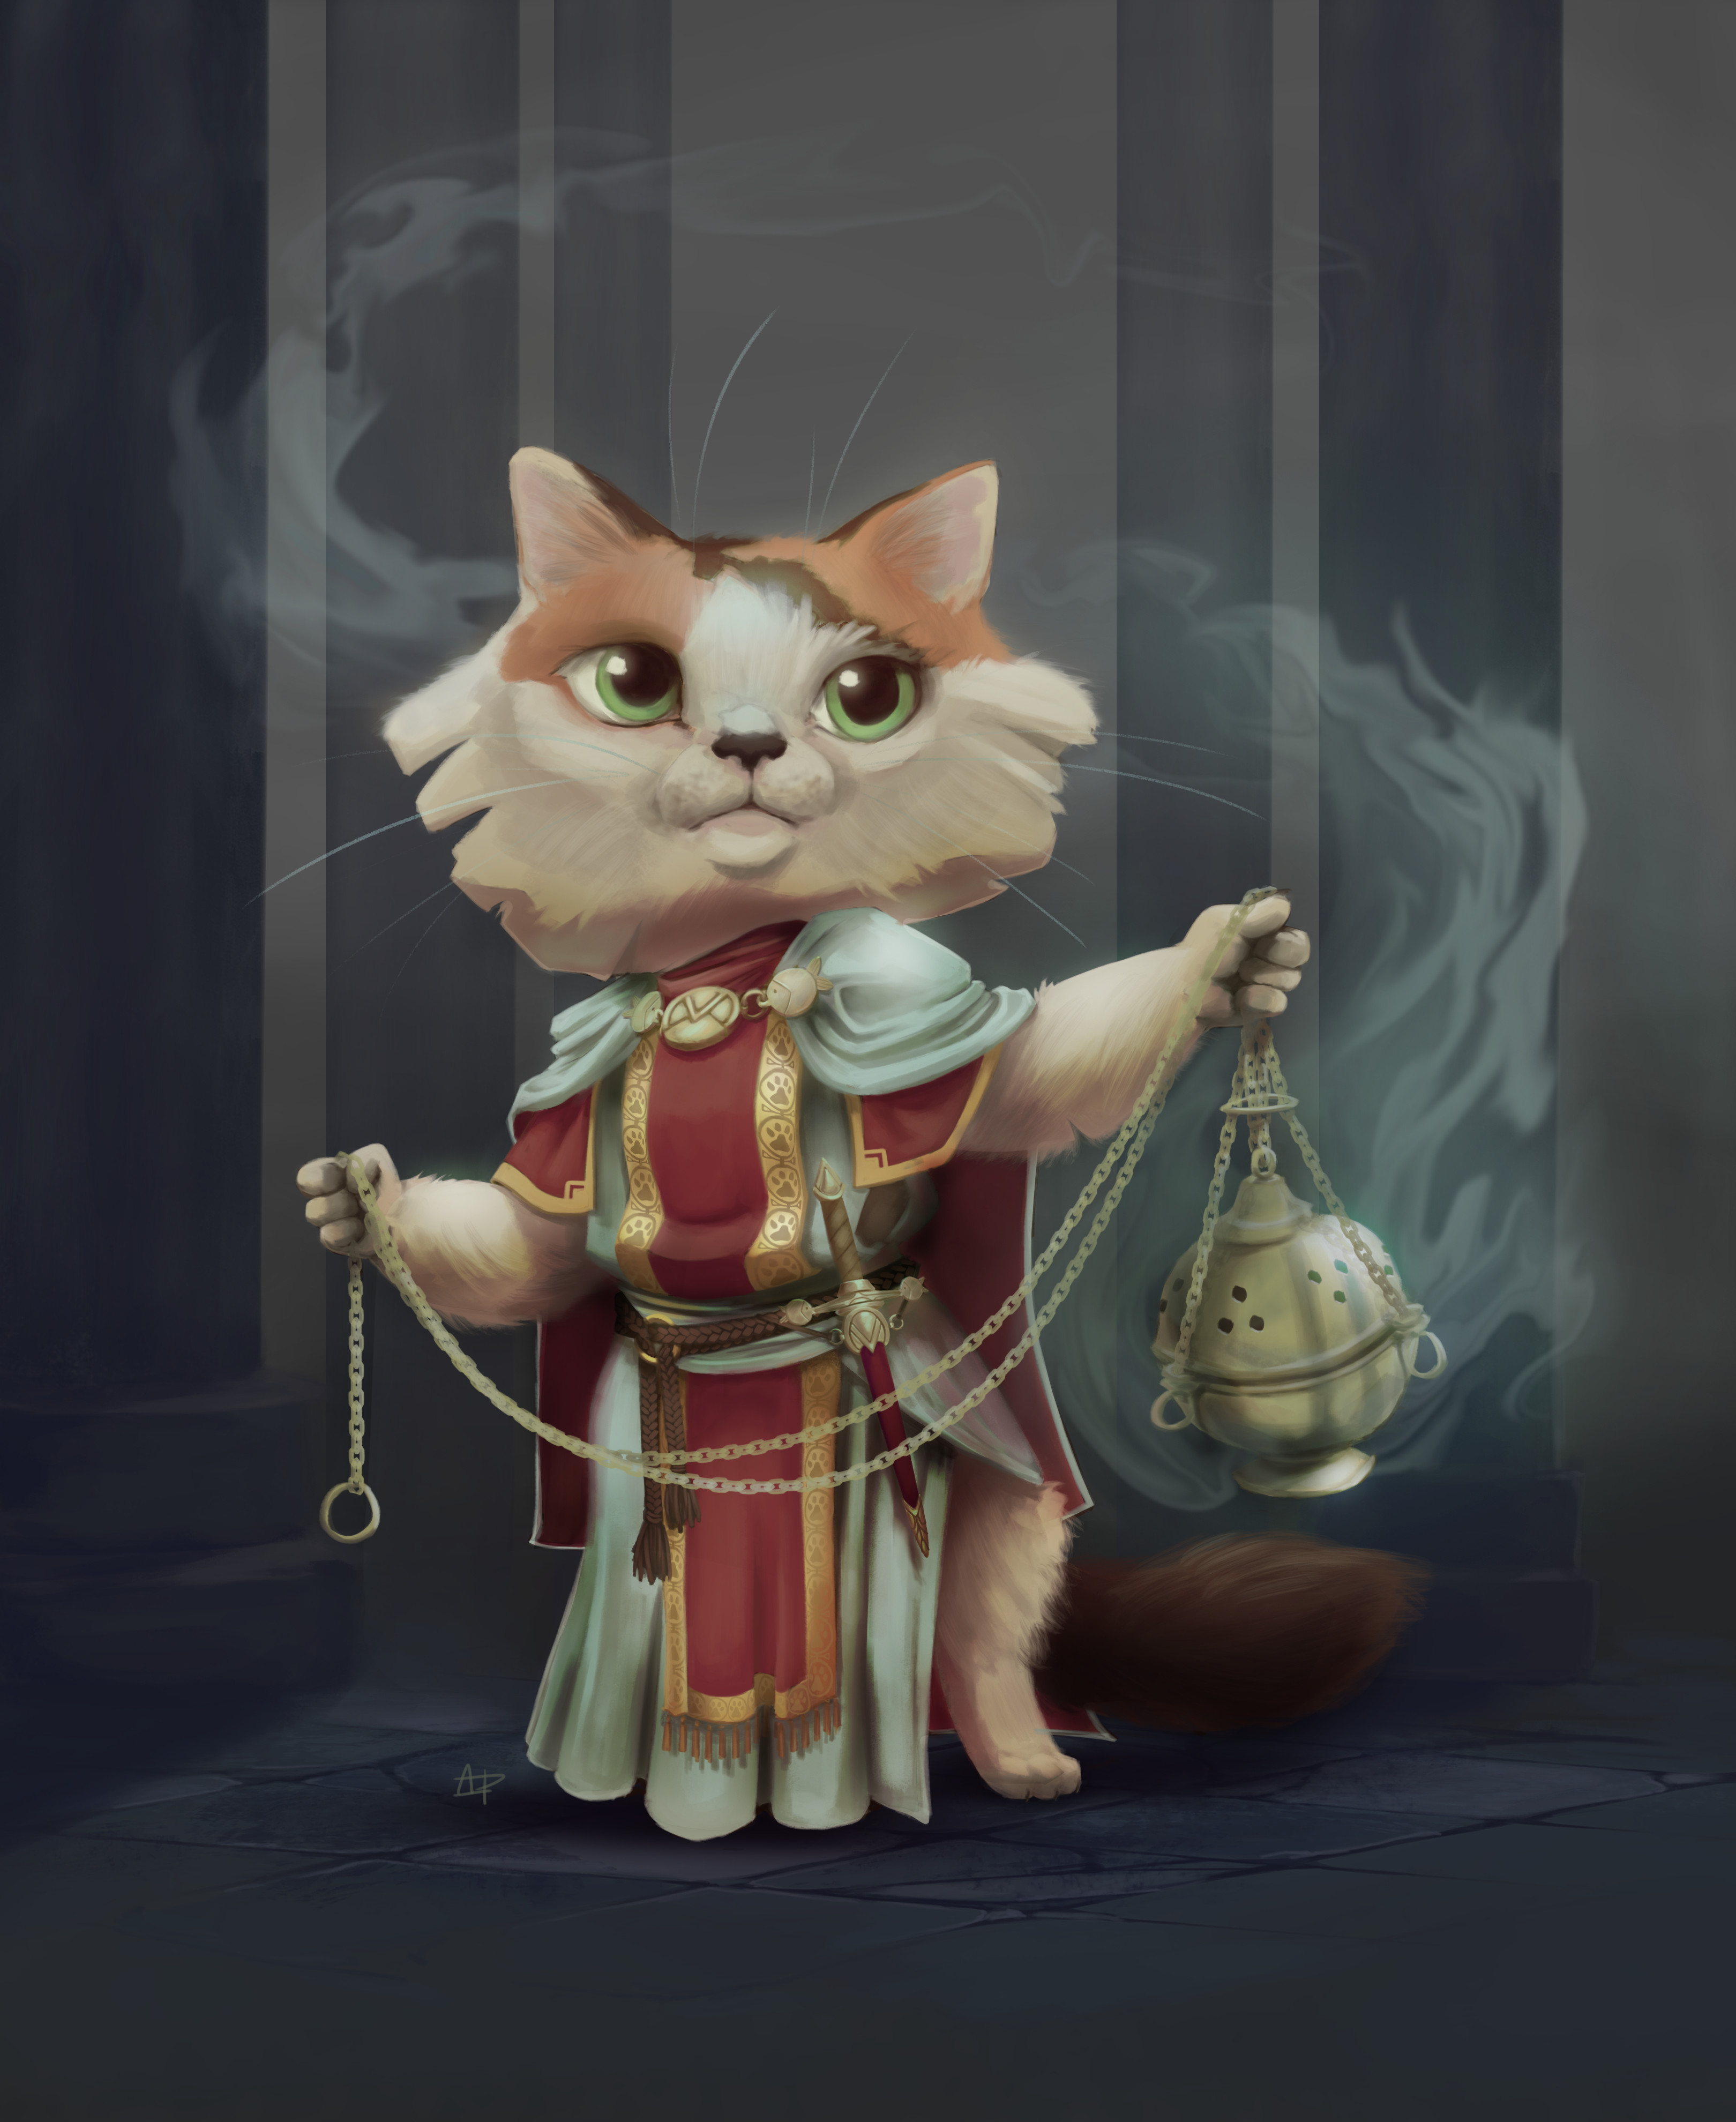 The pungent scent of the incense fills the halls yet again as Kitten performed her daily ritual. The smoke always stung Kitten's eyes ever so slightly but she didn't mind for she was proud to carry out her duty.